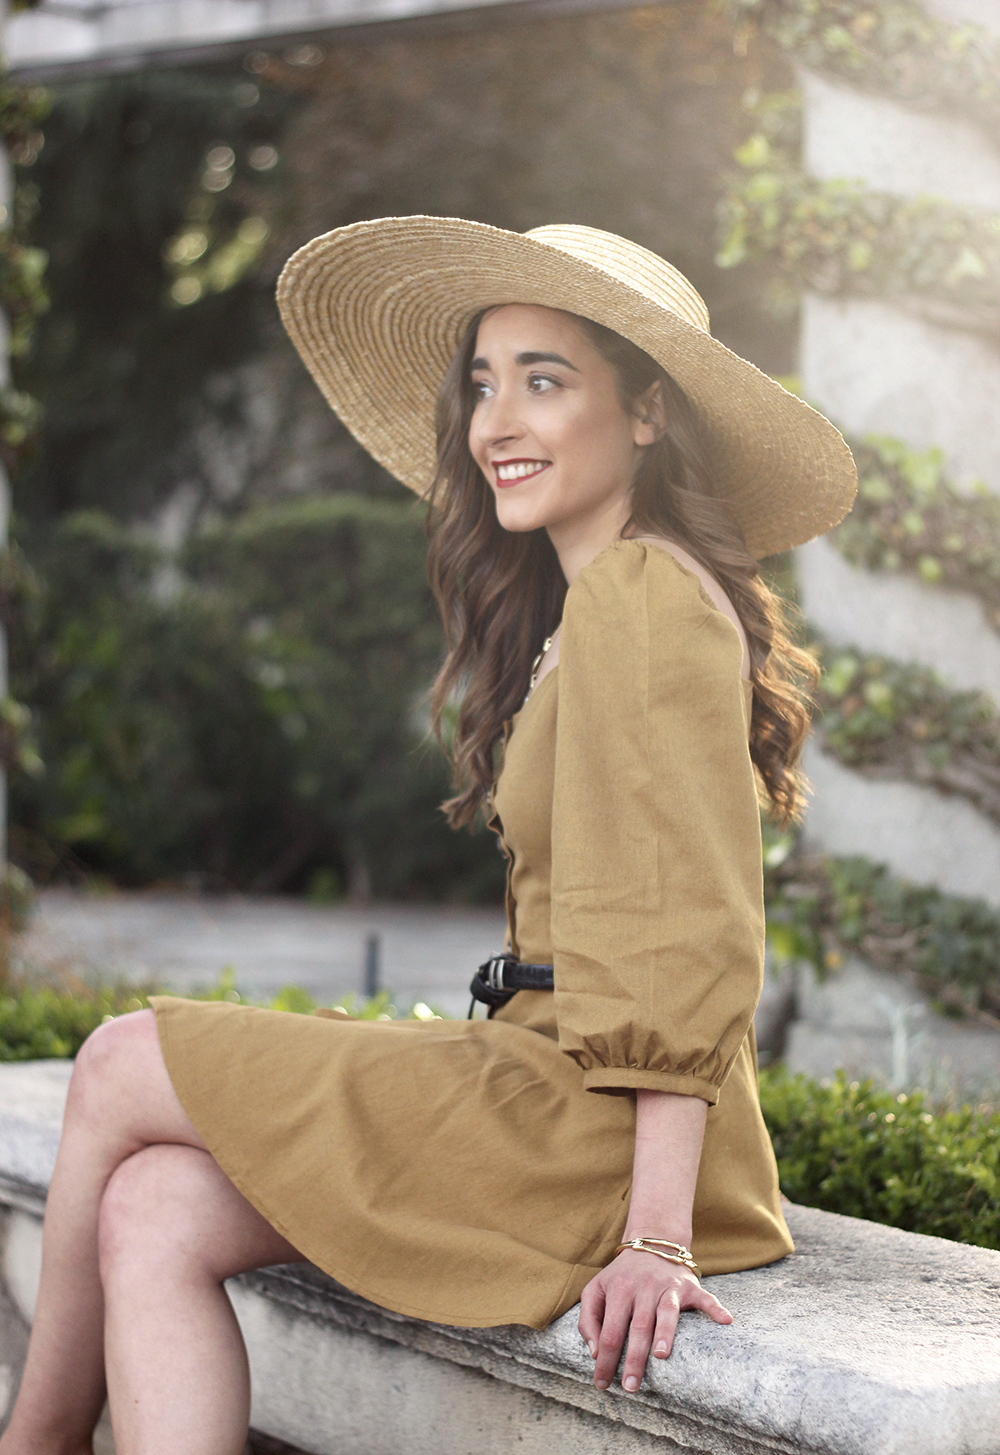 khaki linen dress black sandals straw hat street style spring outfit7